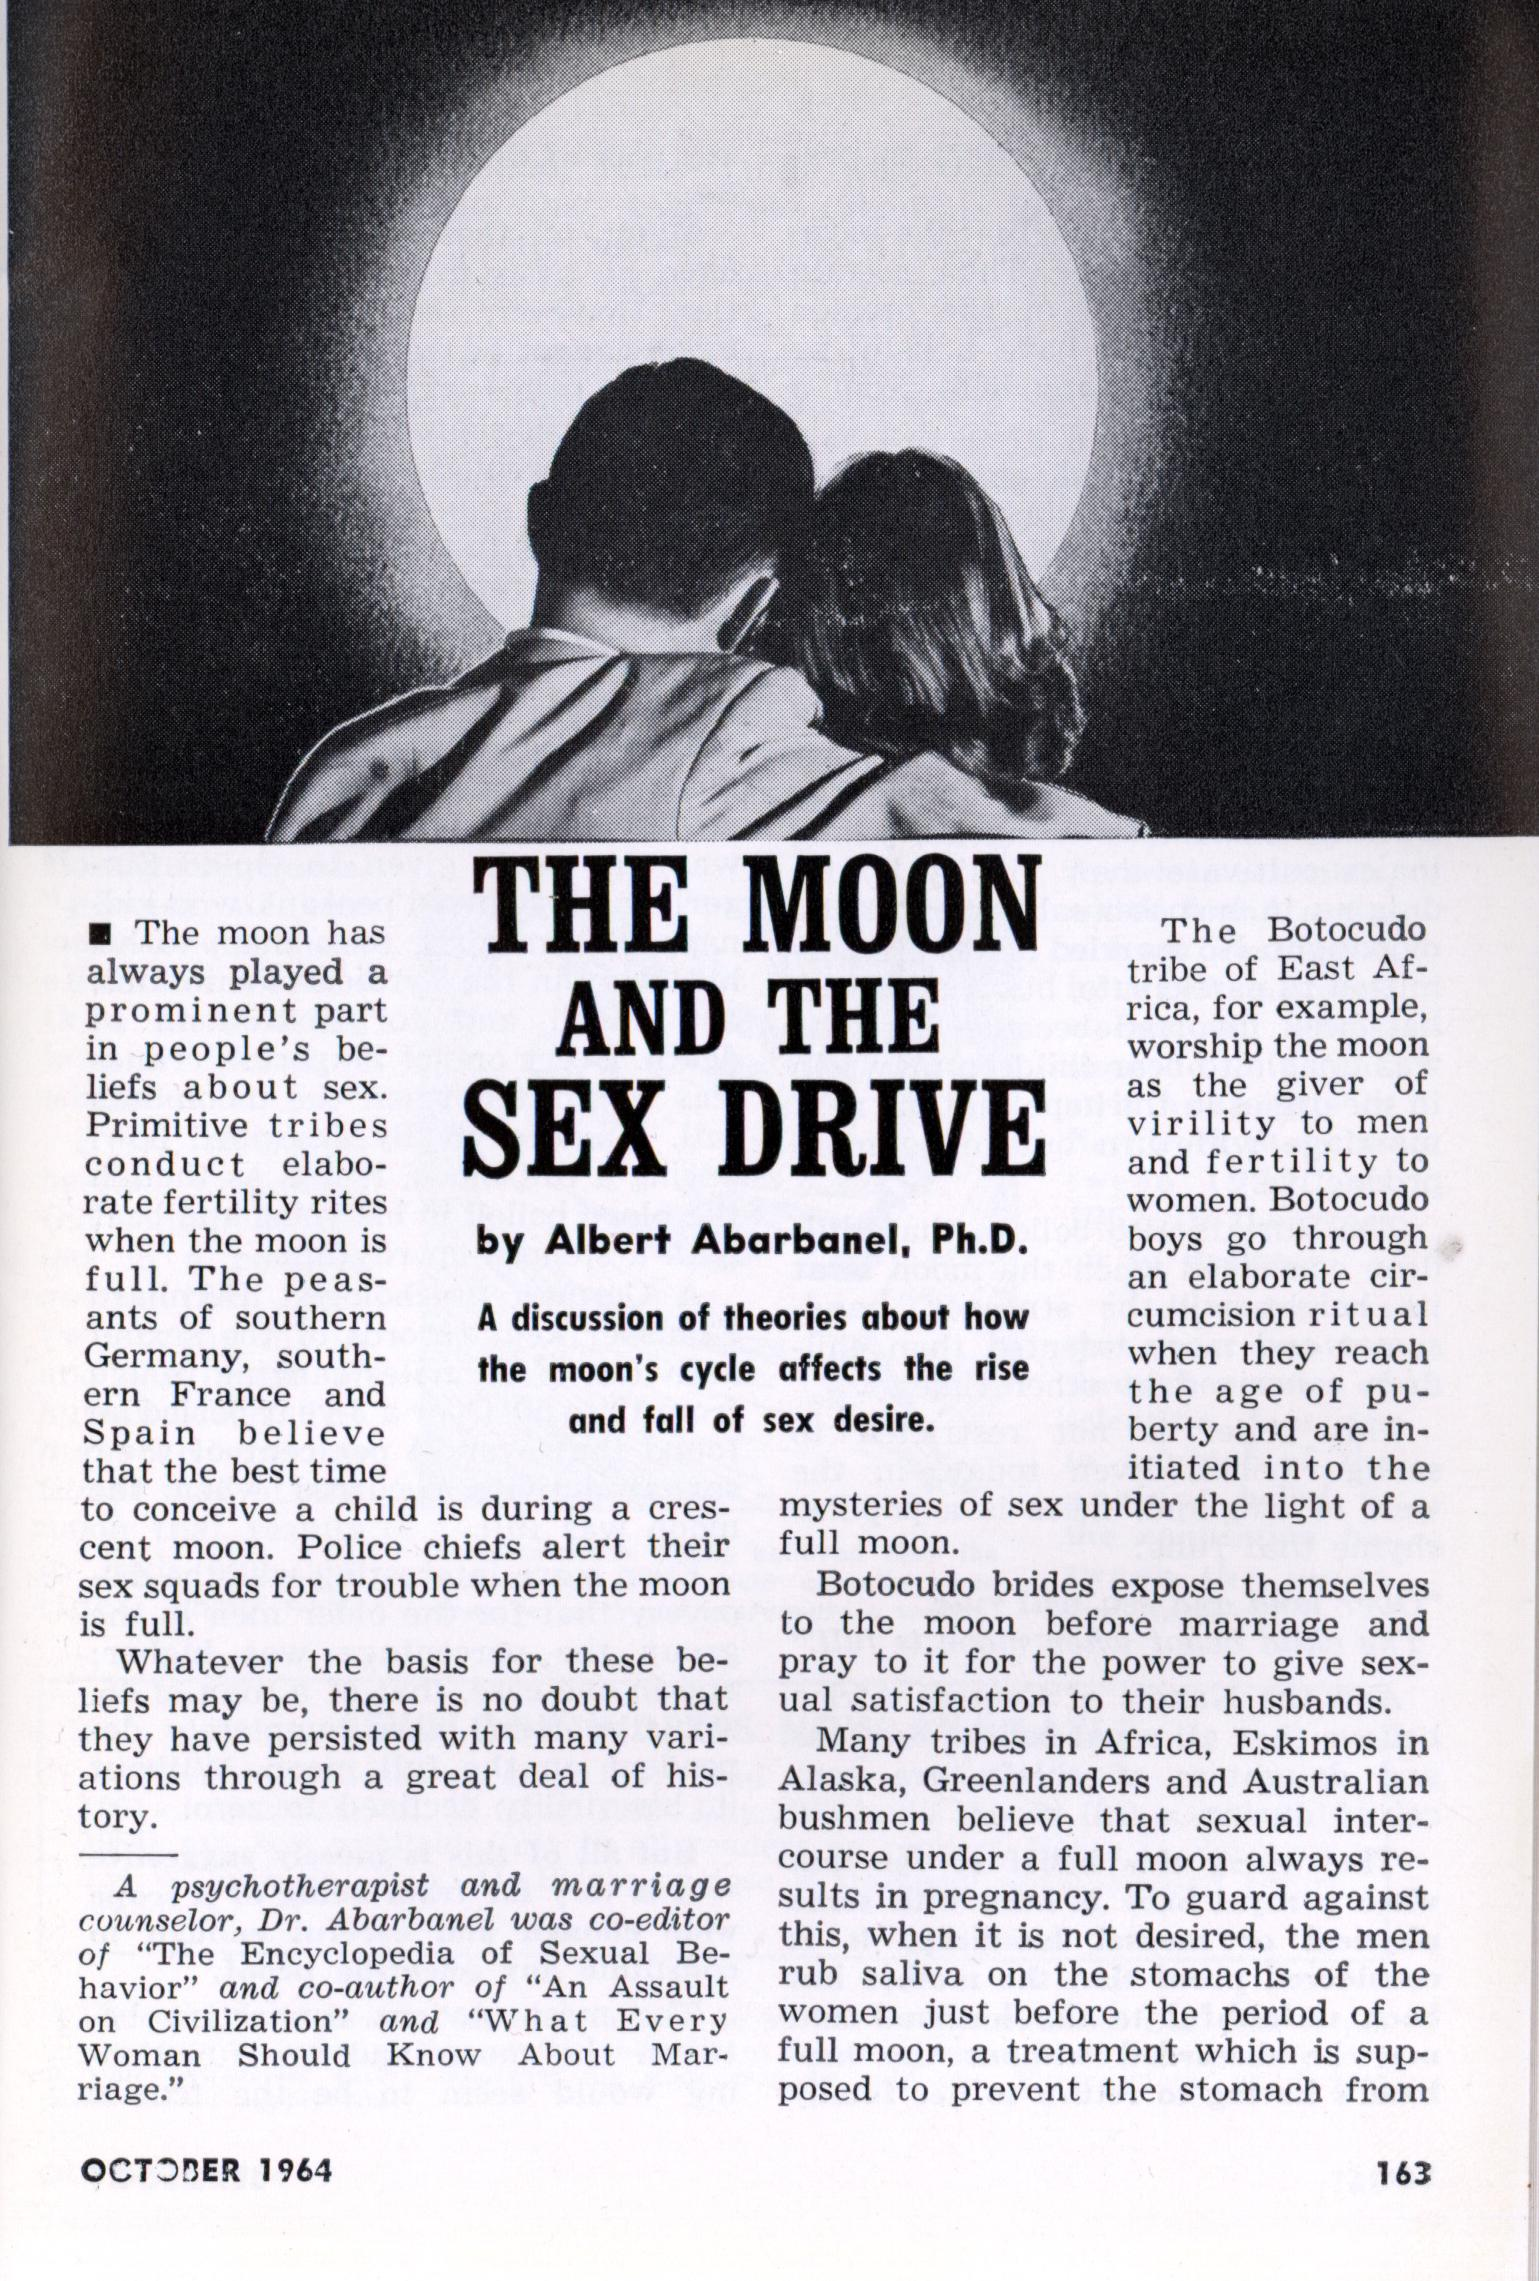 THE MOON AND THE SEX DRIVE